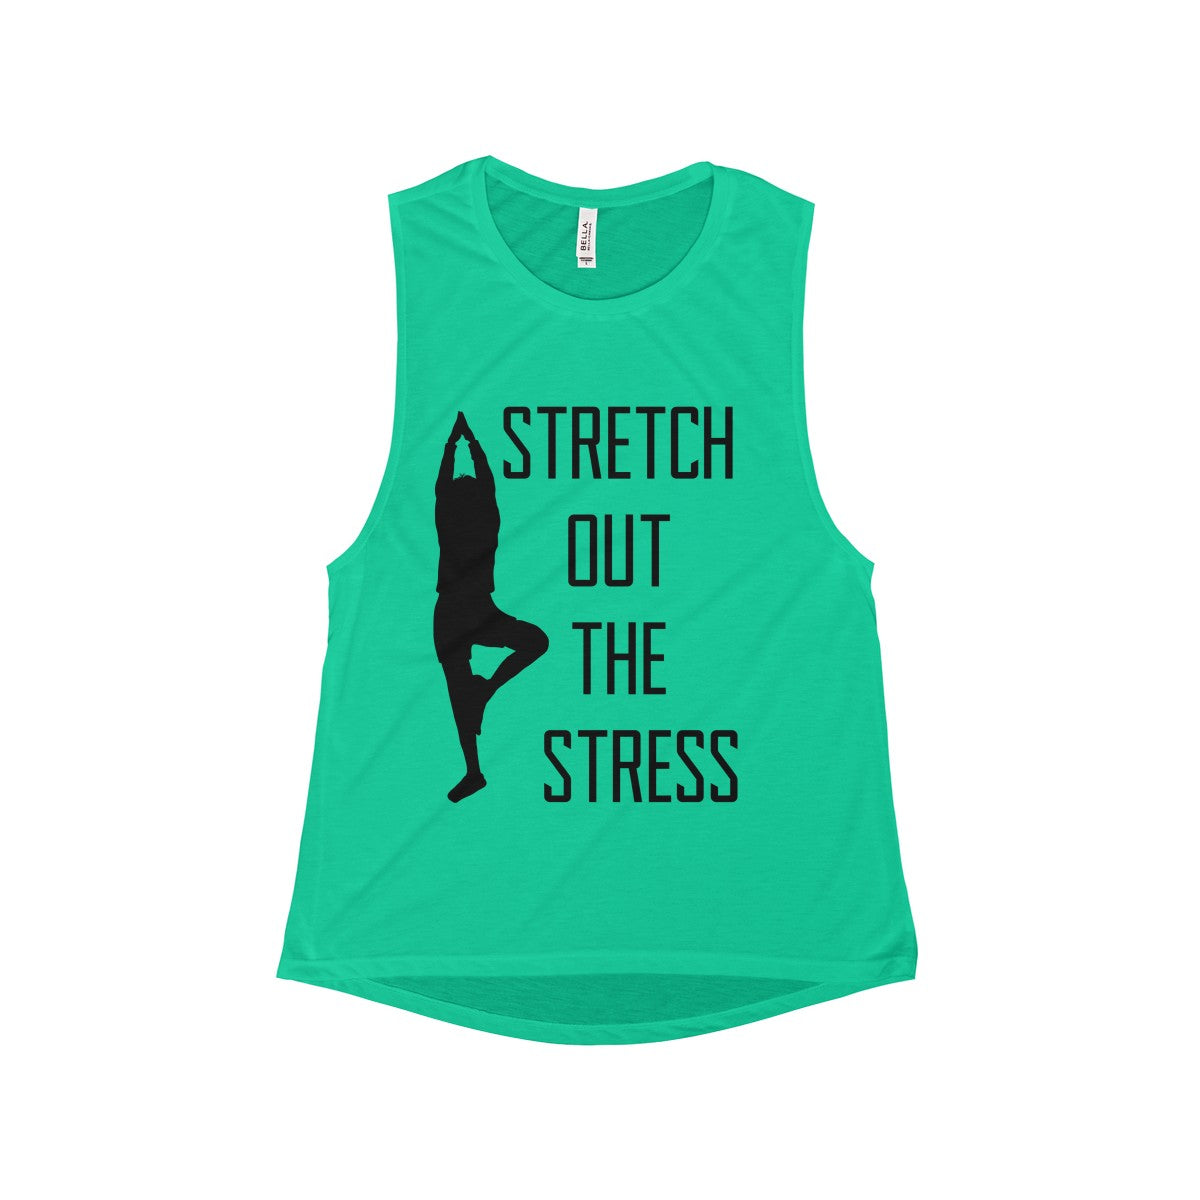 Women's Flowy Scoop Muscle Tank Stretch Out Your Stress